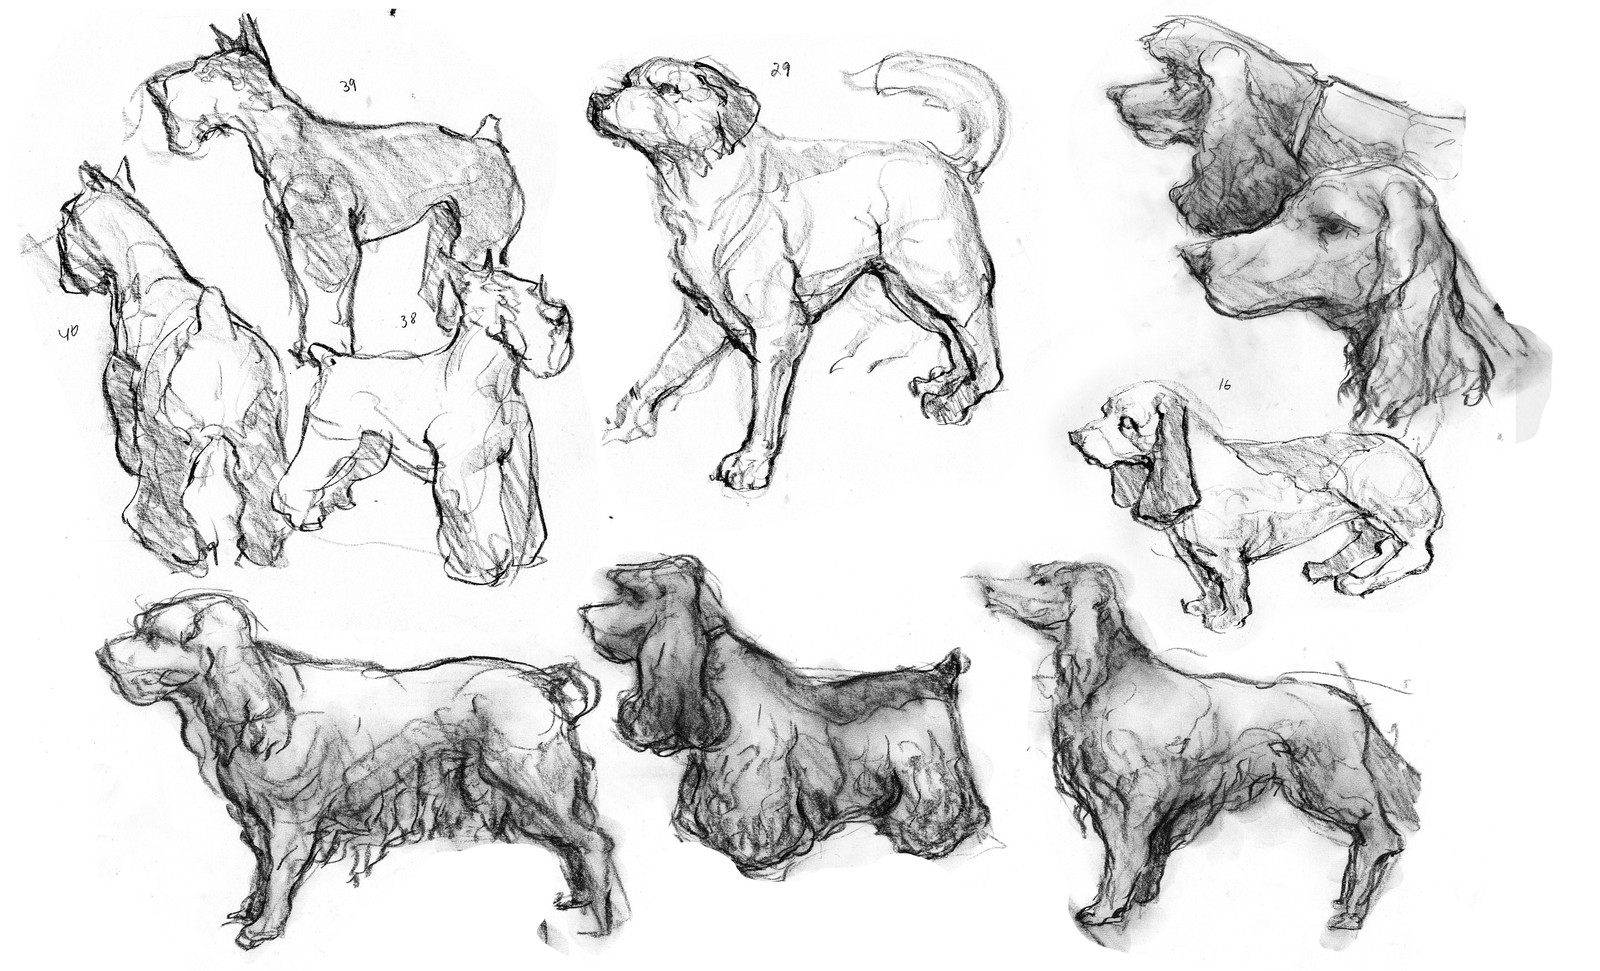 Animal Studies from Life